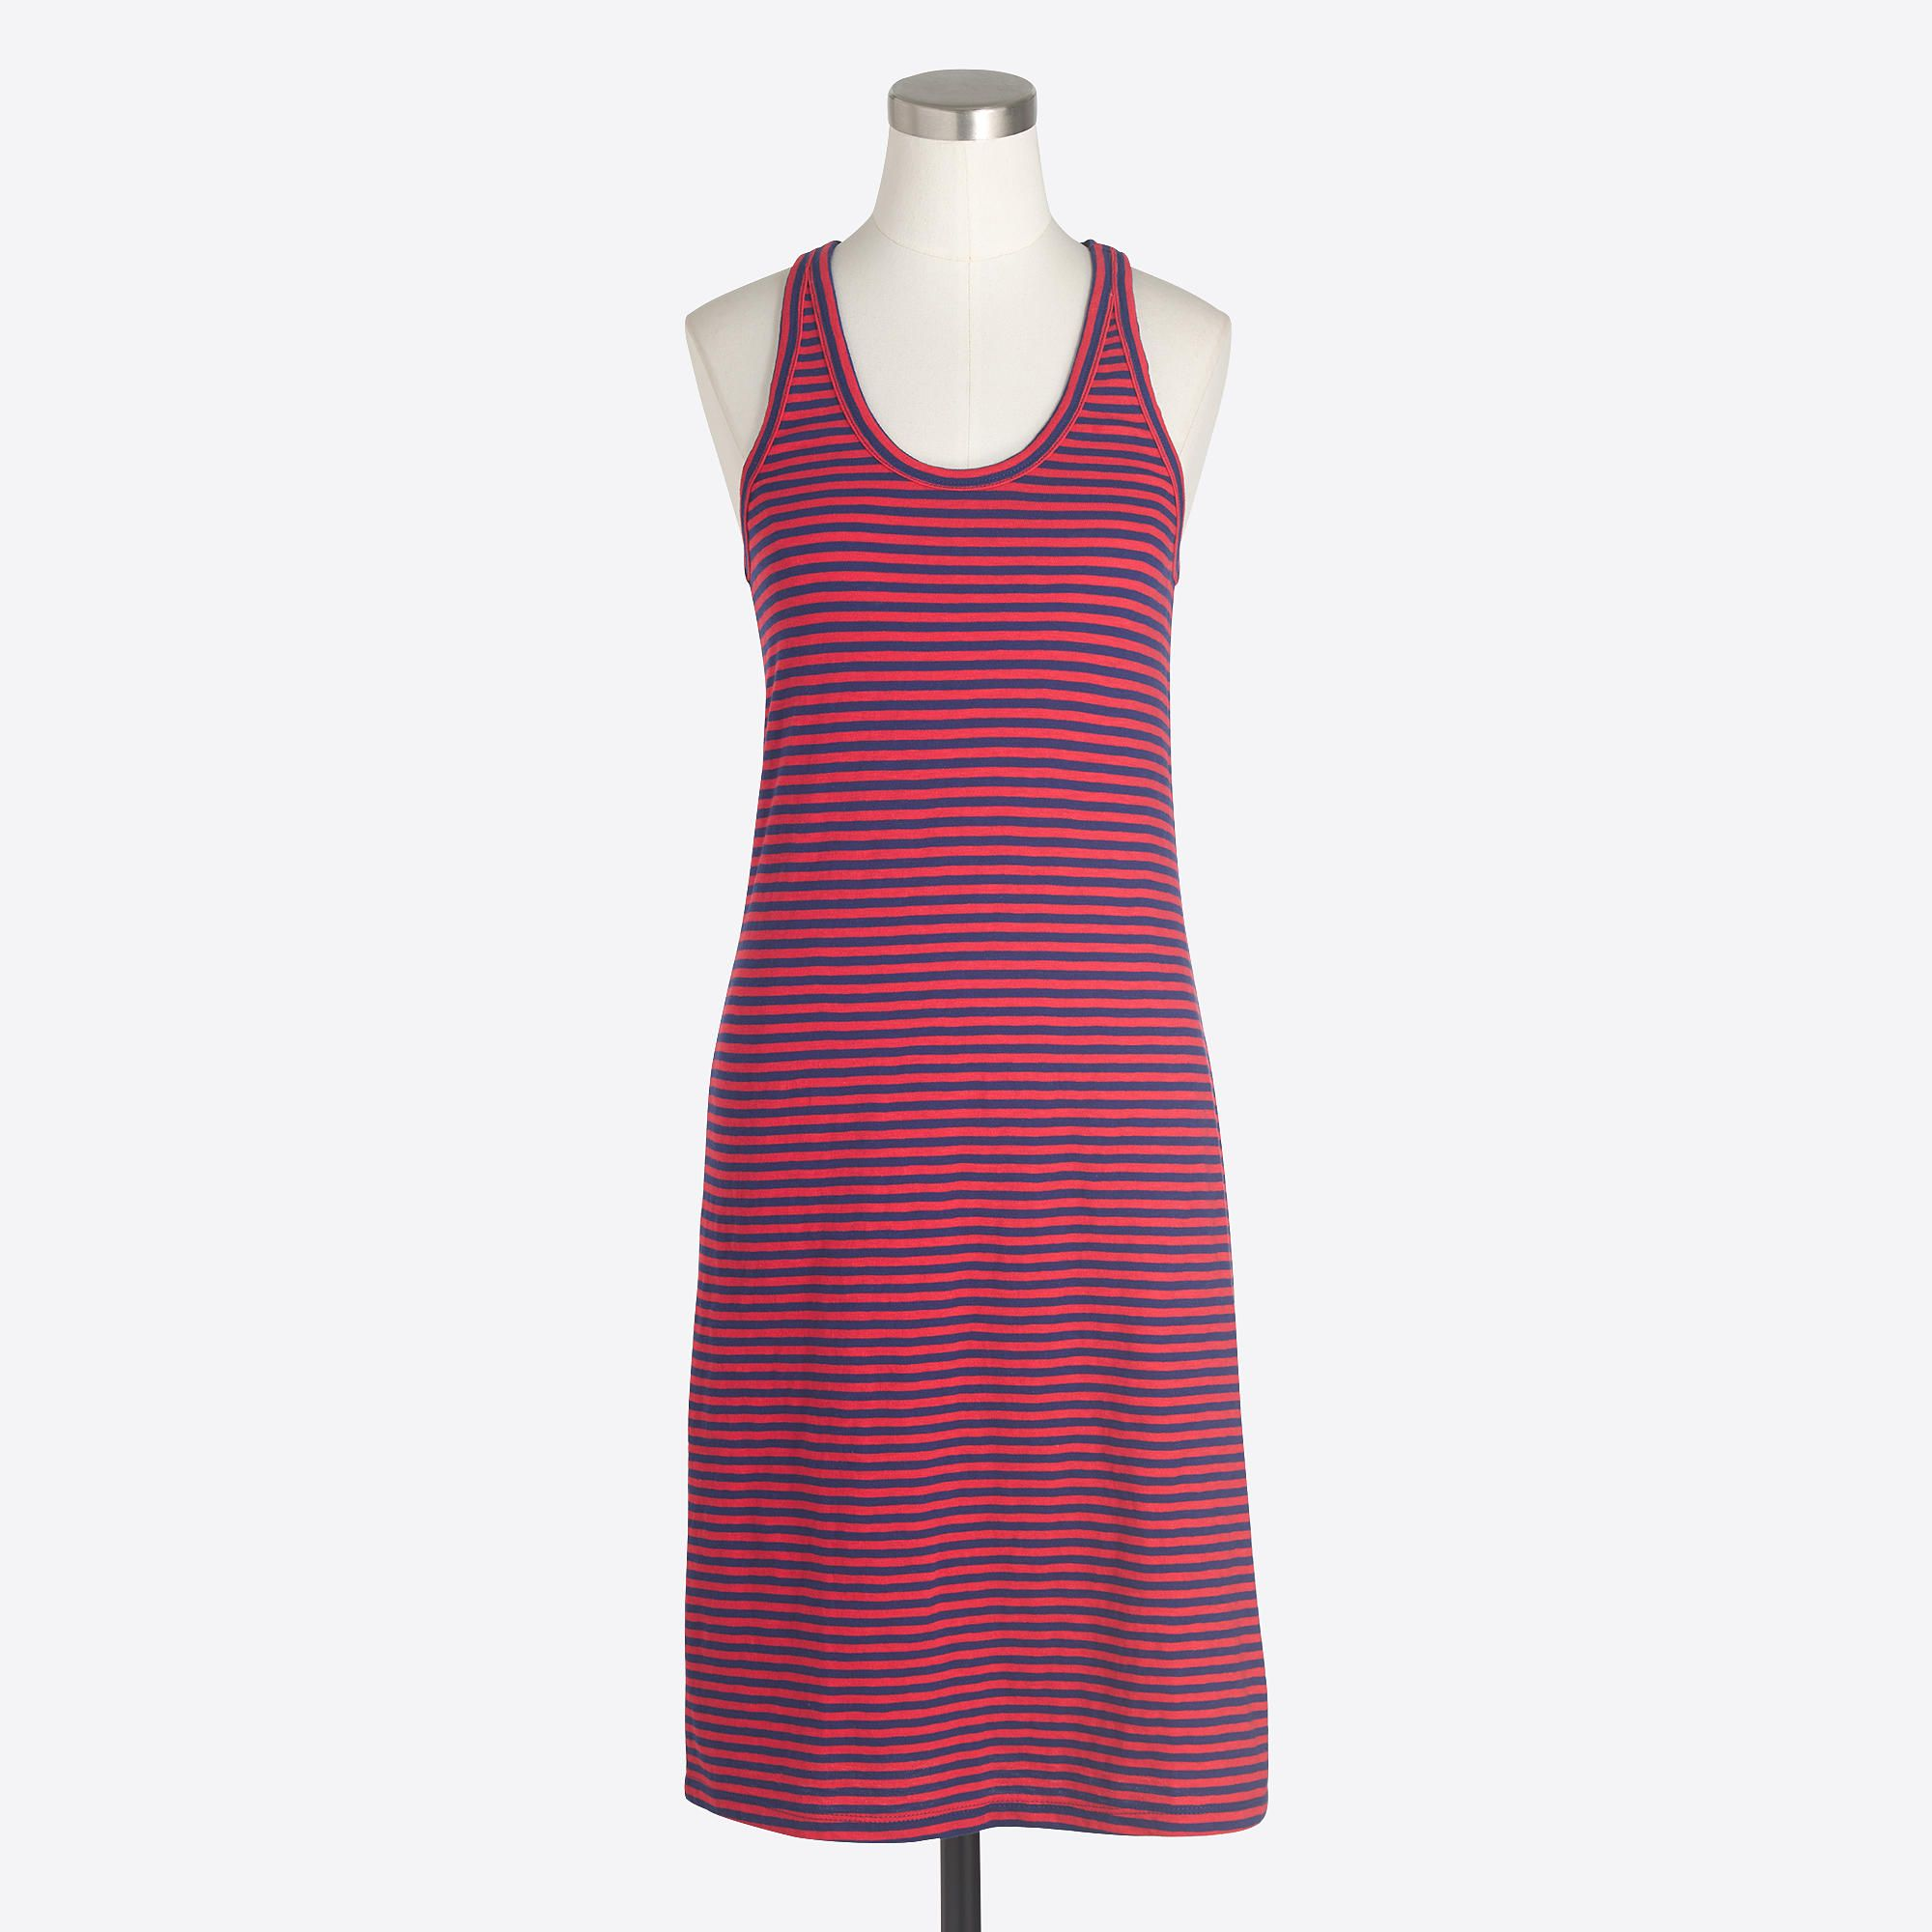 Red And Navy Striped Racerback Dress Casual Dresses Racerback Dress Clothes For Women [ 2000 x 2000 Pixel ]